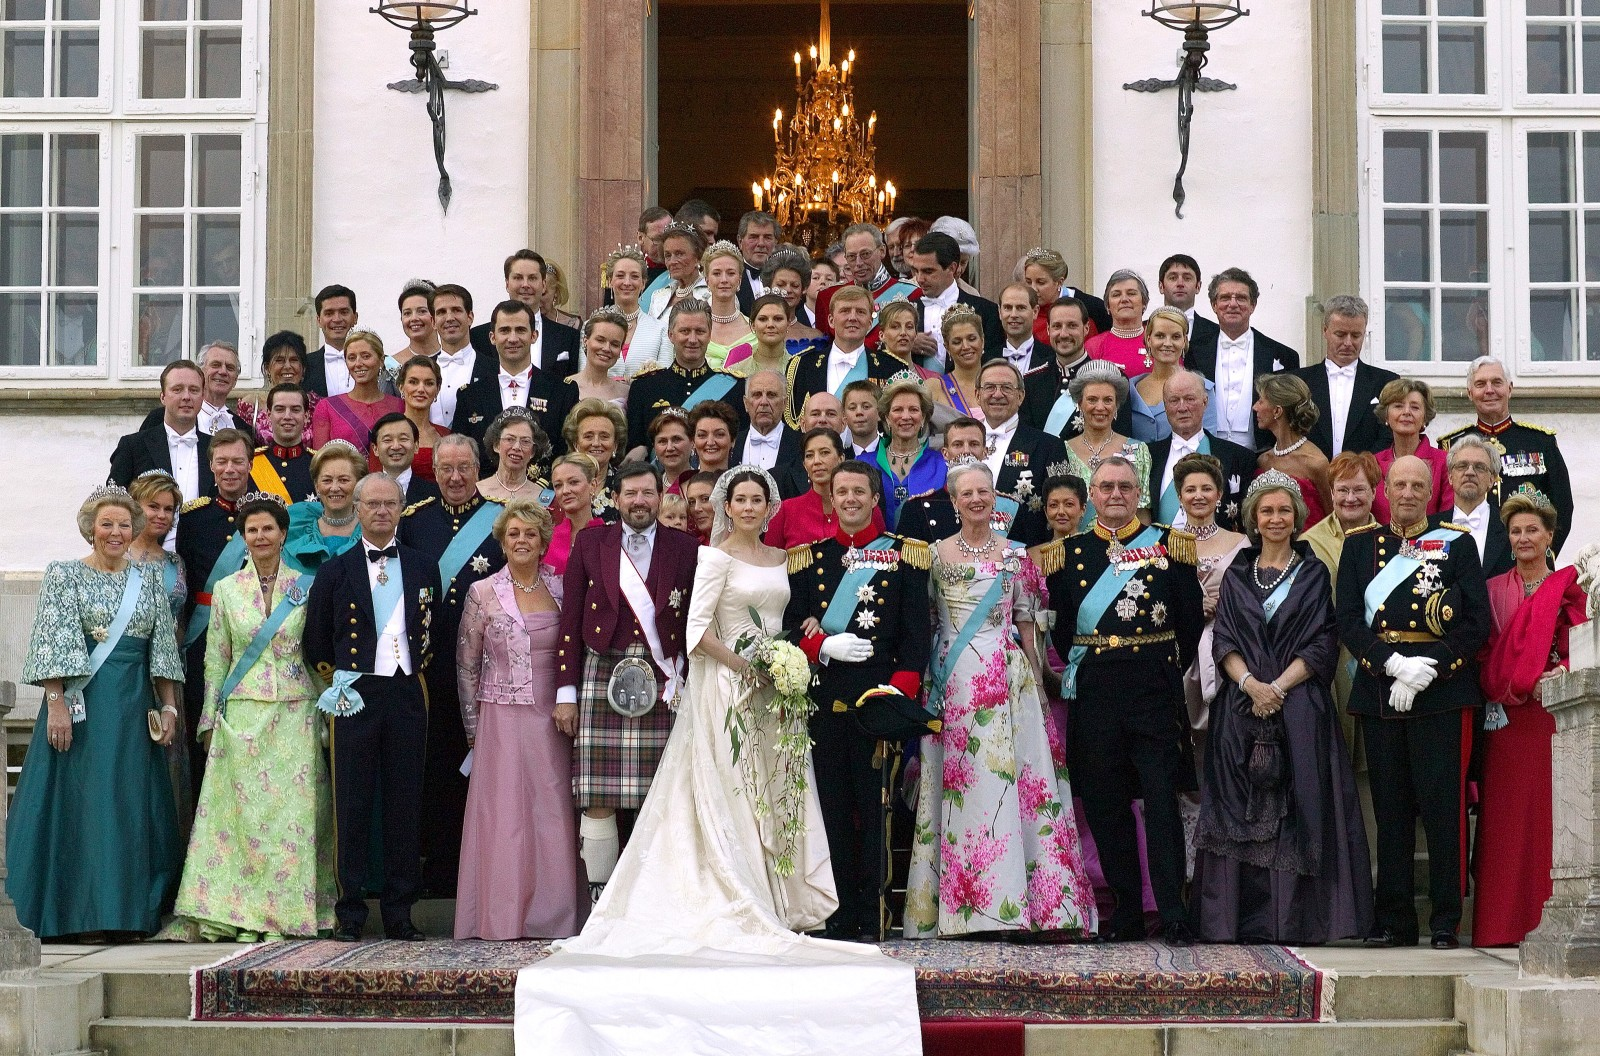 Clover Hill Wines served at the Royal Wedding. Image: Crown Prince Frederik and Crown Princess Mary pose with family and guests on the stairs to Fredensborg Palace prior to the wedding banquet Friday May 14, 2004. First row from left: Queen of the Netherlands Beatrix, Queen of Sweden Silvia, King of Sweden Carl Gustav, Mrs. Susan Elisabeth Donaldson, Professor John Donaldson, Crown Princess Mary, Crown Prince Frederk, Danish Queen Margrethe, Prince Consort Henrik, Queen of Spain Sofia, King Harald of Norway and Queen Sonja of Norway. Second row from left: Grand Duchess of Luxembourg Maria Teresa. King Albert II of Belgium, Queen Paola of Belgium, Ms. Amber Petty, Mrs. Scott Bailey, Mrs. Jane Stephens, Danish Prince Joachim, Princess Alexandra, Mrs. Musaif, President of Iceland Olafur Grimson, President of Finland Tarja Halonen and Dr. Arajaervi. Thrid row from left: Mrs. Jeffrey, Govenor General of Australia Michael Jeffrey, Princess Elisabeth of Denmark, M. Claude Bardin, Mme Bernadette Chirac, Mrs. John Stuart Donaldson, Queen Anne-Marie, King Konstantin, Princess Benedikte of Berleburg, Prince Richard of Berleburg and Count and Countess Etienne de Monpezat. Fourth row from left: Prince Gustav of Berleburg, Prince Guillaume of Luxembourg, Crown Prince Naruhito of Japan, Ms. Letizia Ortiz, Crown Prince Felipe of Spain, Crown Princess Victoria of Sweden, Crown Prince Willem Alexander of the Netherlands, Crown Princess Maxima of the Netherlands, Crown Prince Haakon and Crown Princess Mette-Marit of Norway, Duke and Duchess of Brabant. Fith row from left: Countess and Count Jean-Baptiste de Monpezat, Crown Prince and Crown Princes Pavlos and Marie-Chantal of Greece, Prince Edward and Sophie of Wessex, Mrs. and Mr. Jacques Beauvillain and Mr. Craig Stephens. Sixth row from left: Mr. Carlos Morales Quintana and Princess Alexia, Count Jefferson and Princess Alexandra, Princess Nathalie, Prince Nikolaos of Greecwe, Princess Theodora and Mr.Scott Bailay. Seventh row from left: Countess Anne Dorte and Count Christian of Rosenb